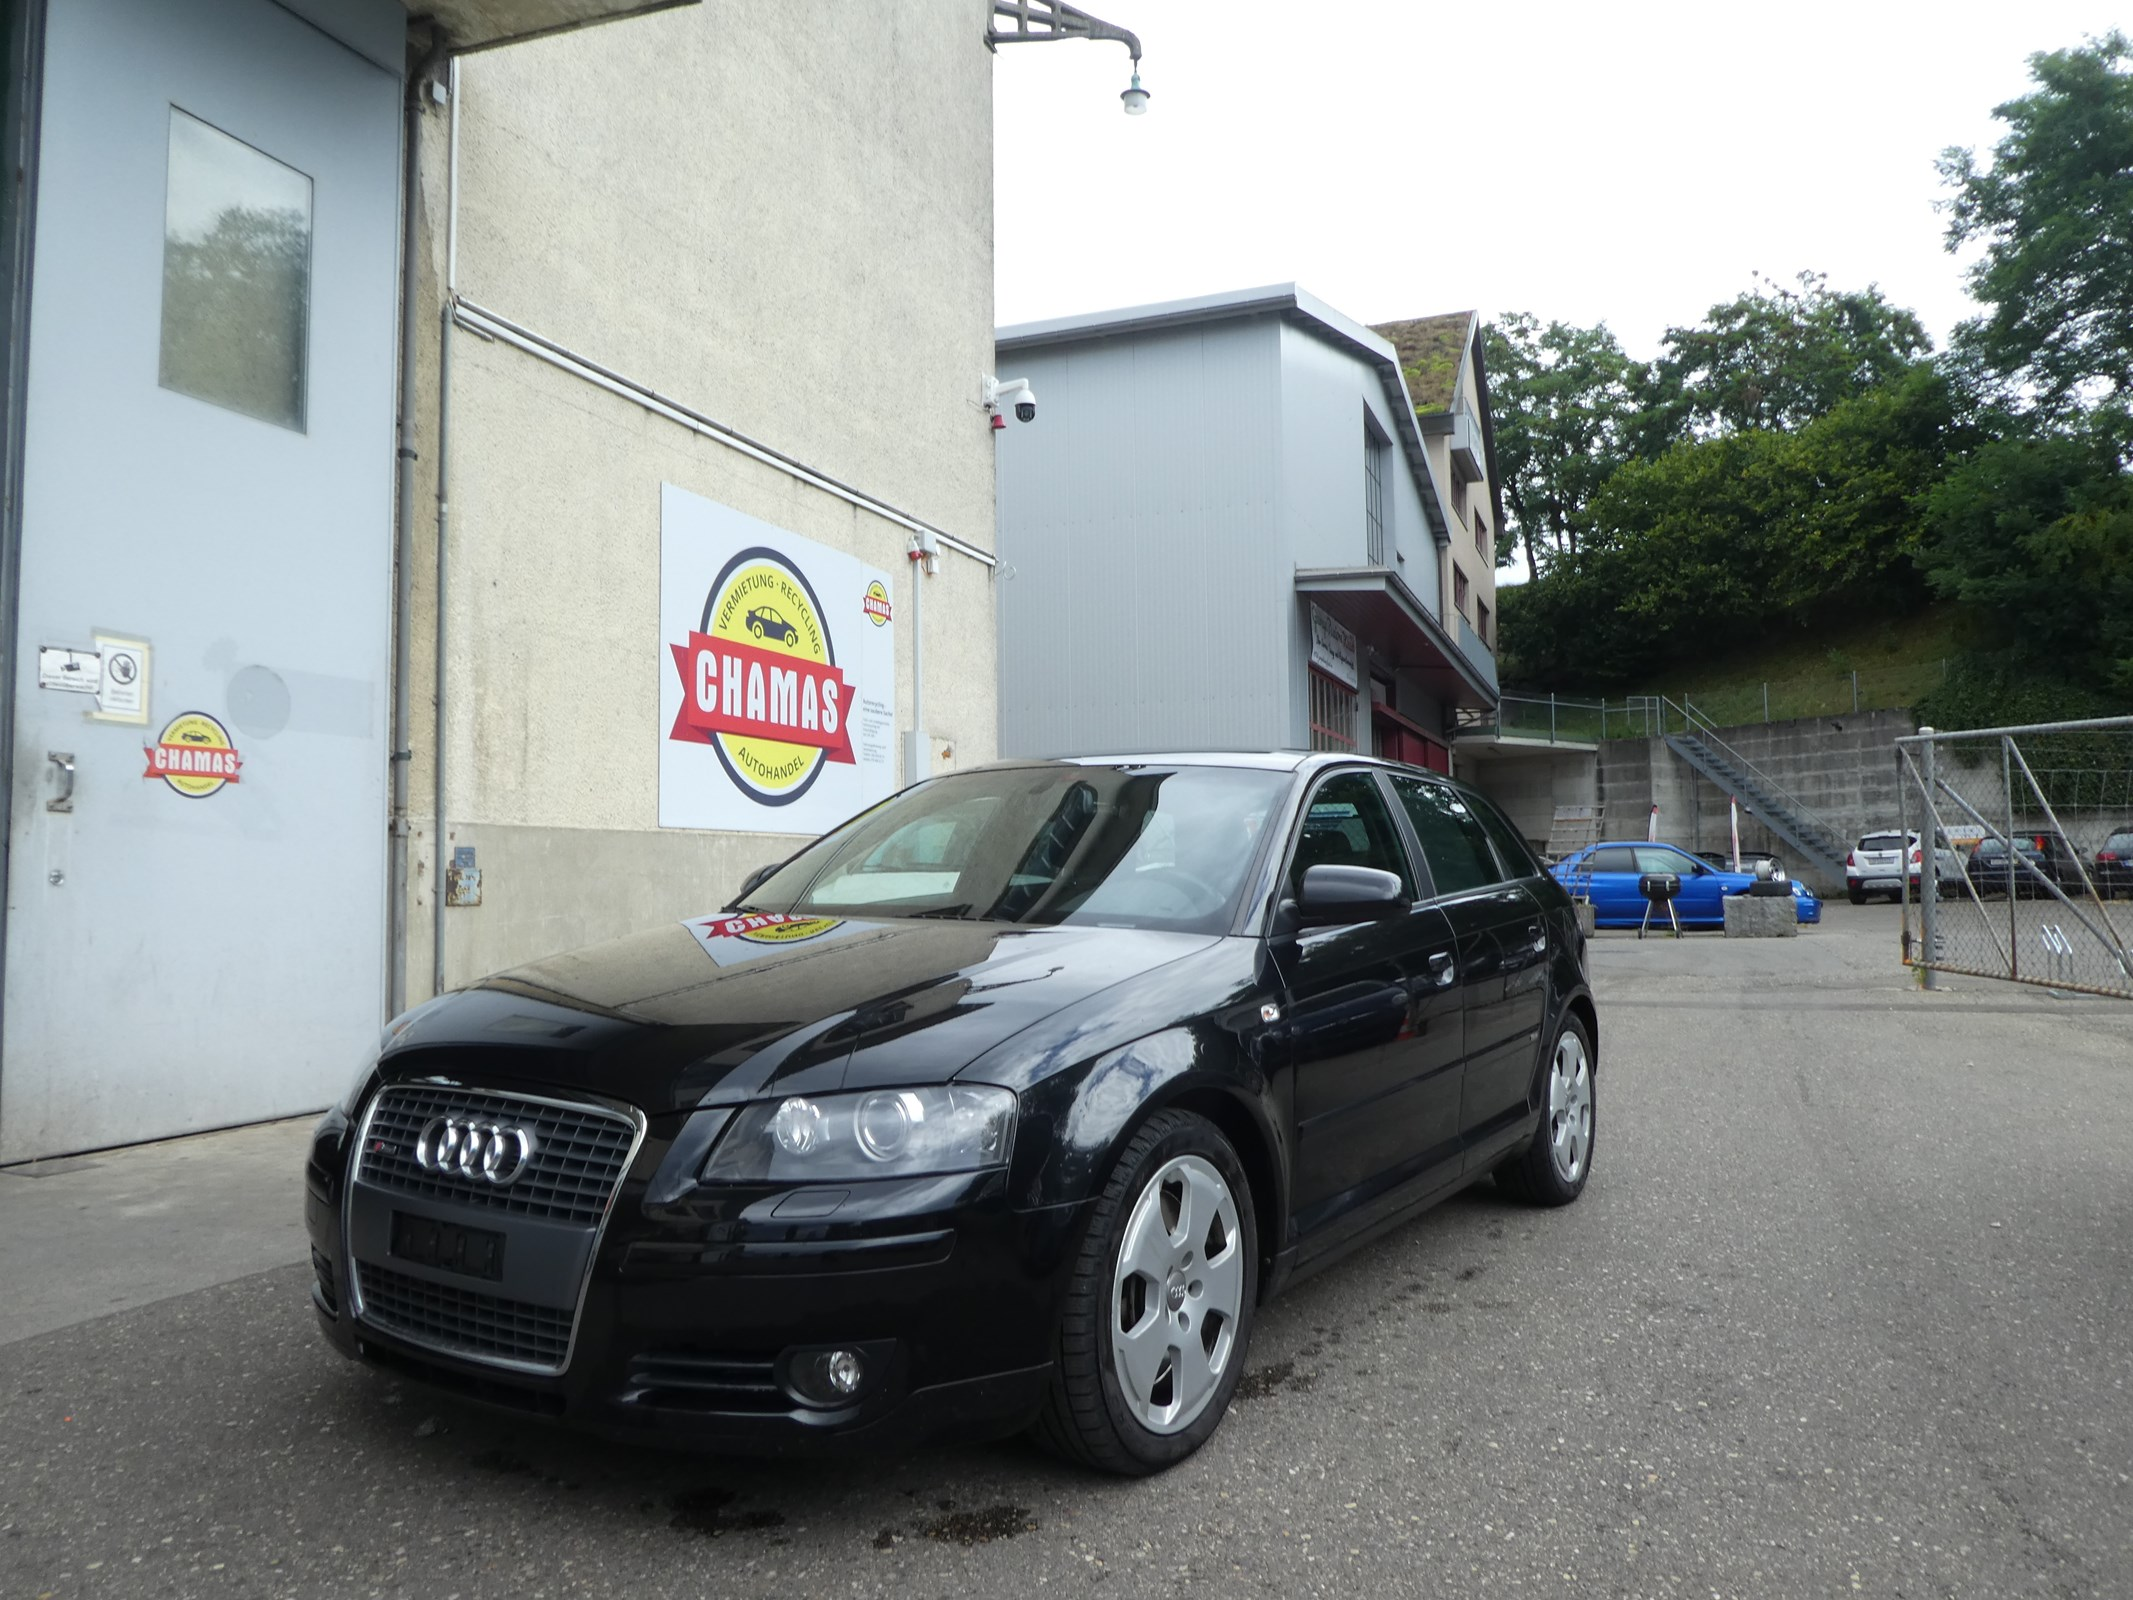 Buy Used Car Coupe Audi A3 3 2 Ambition V6 Quattro 179055 Km At 5768 Chf On Carforyou Ch